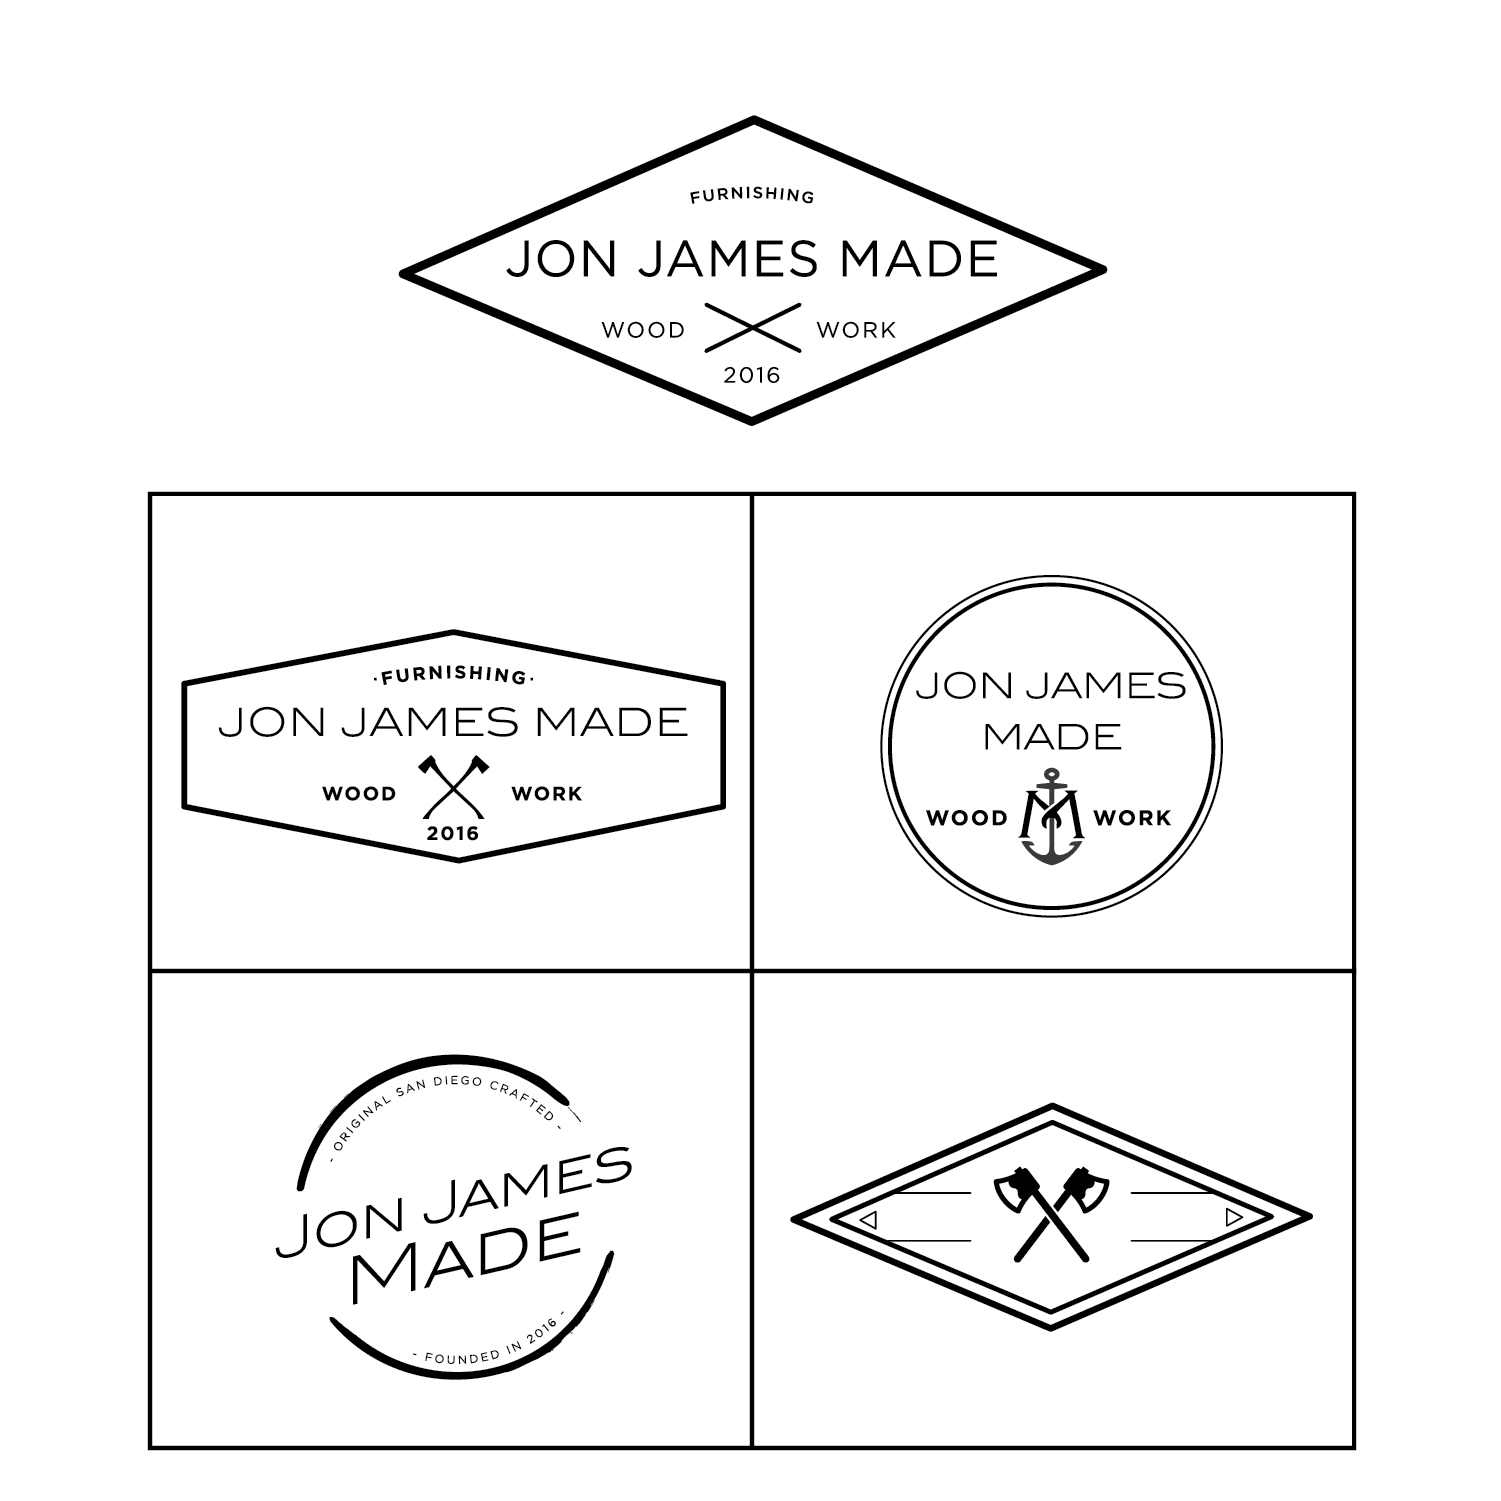 logo design + full branding - Jon James Made is a San Diego based badass wood working company. With a rustic style and sturdy creations, this company sought after a strong branding identity to showcase their even stronger pieces of work.